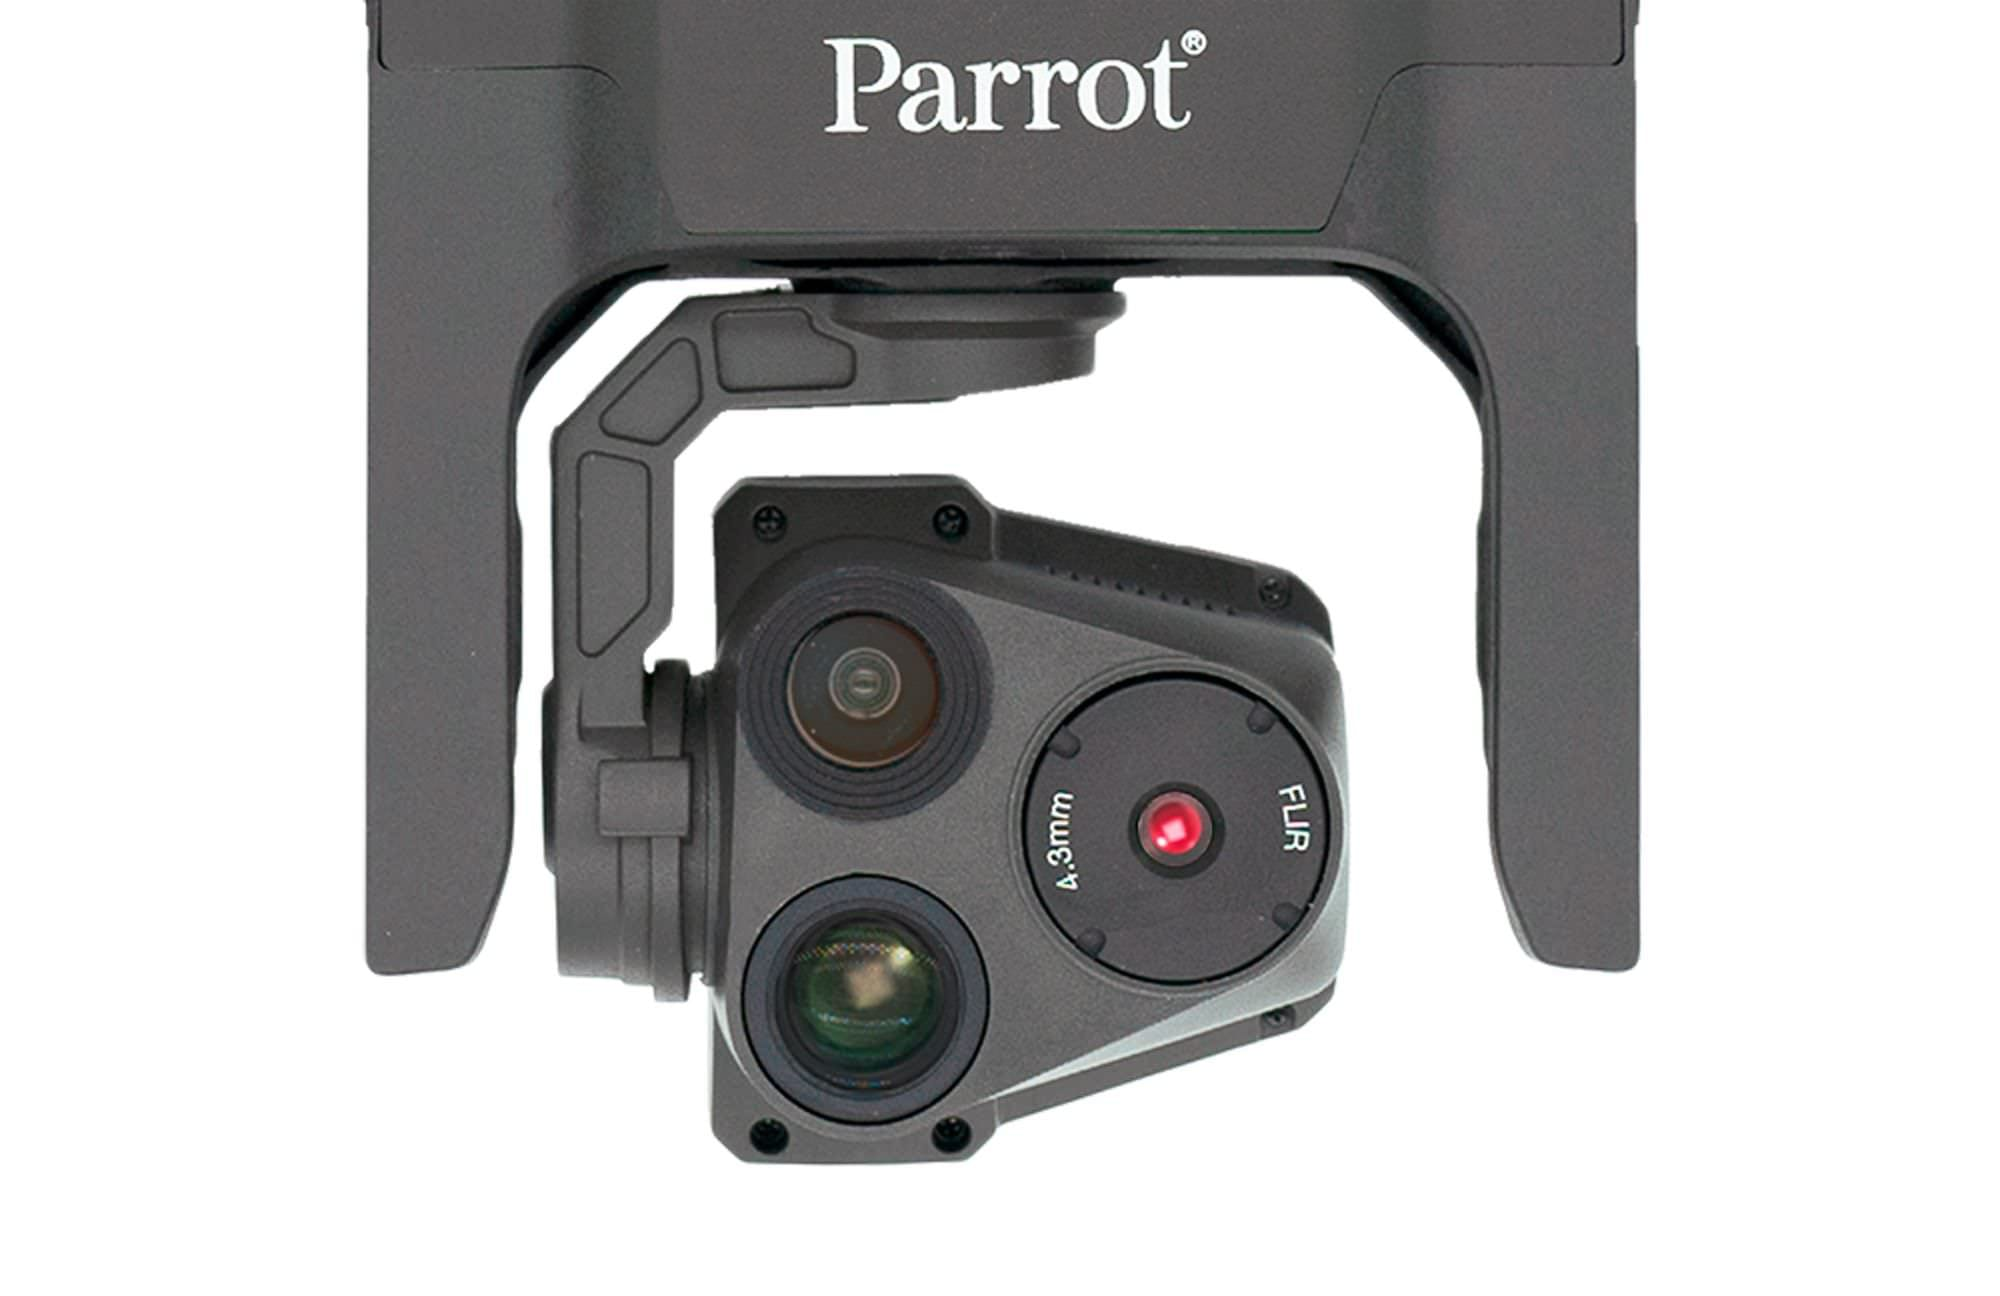 Parrot ANAFI USA a new drone for first responders and professionals